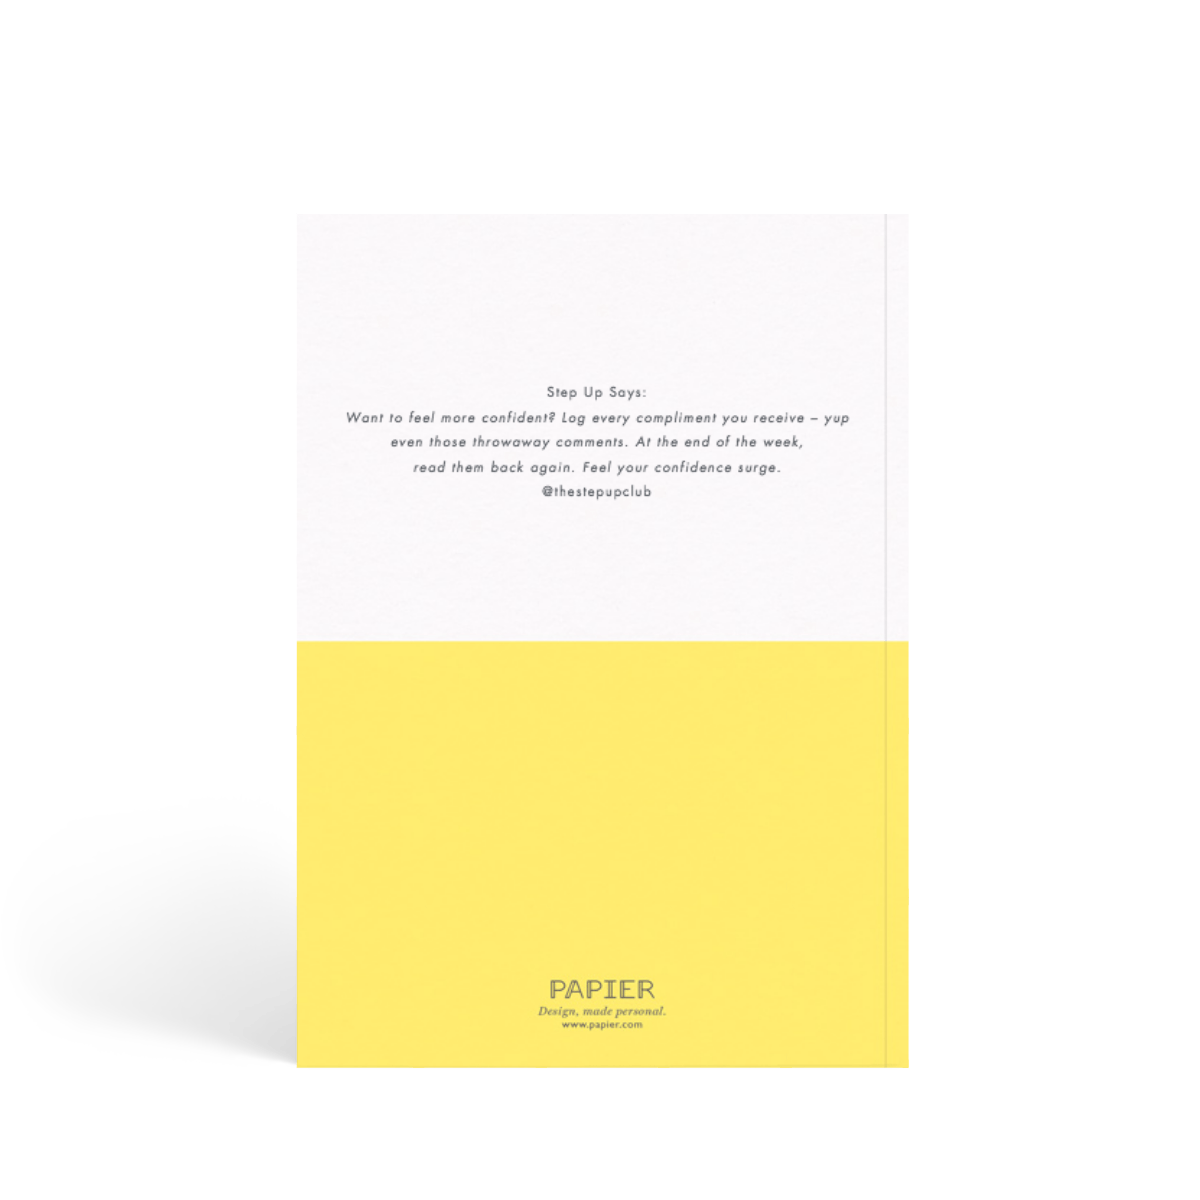 Https%3a%2f%2fwww.papier.com%2fproduct image%2f19889%2f5%2fdemi yellow confidence notes 5091 back 1487860113.png?ixlib=rb 1.1